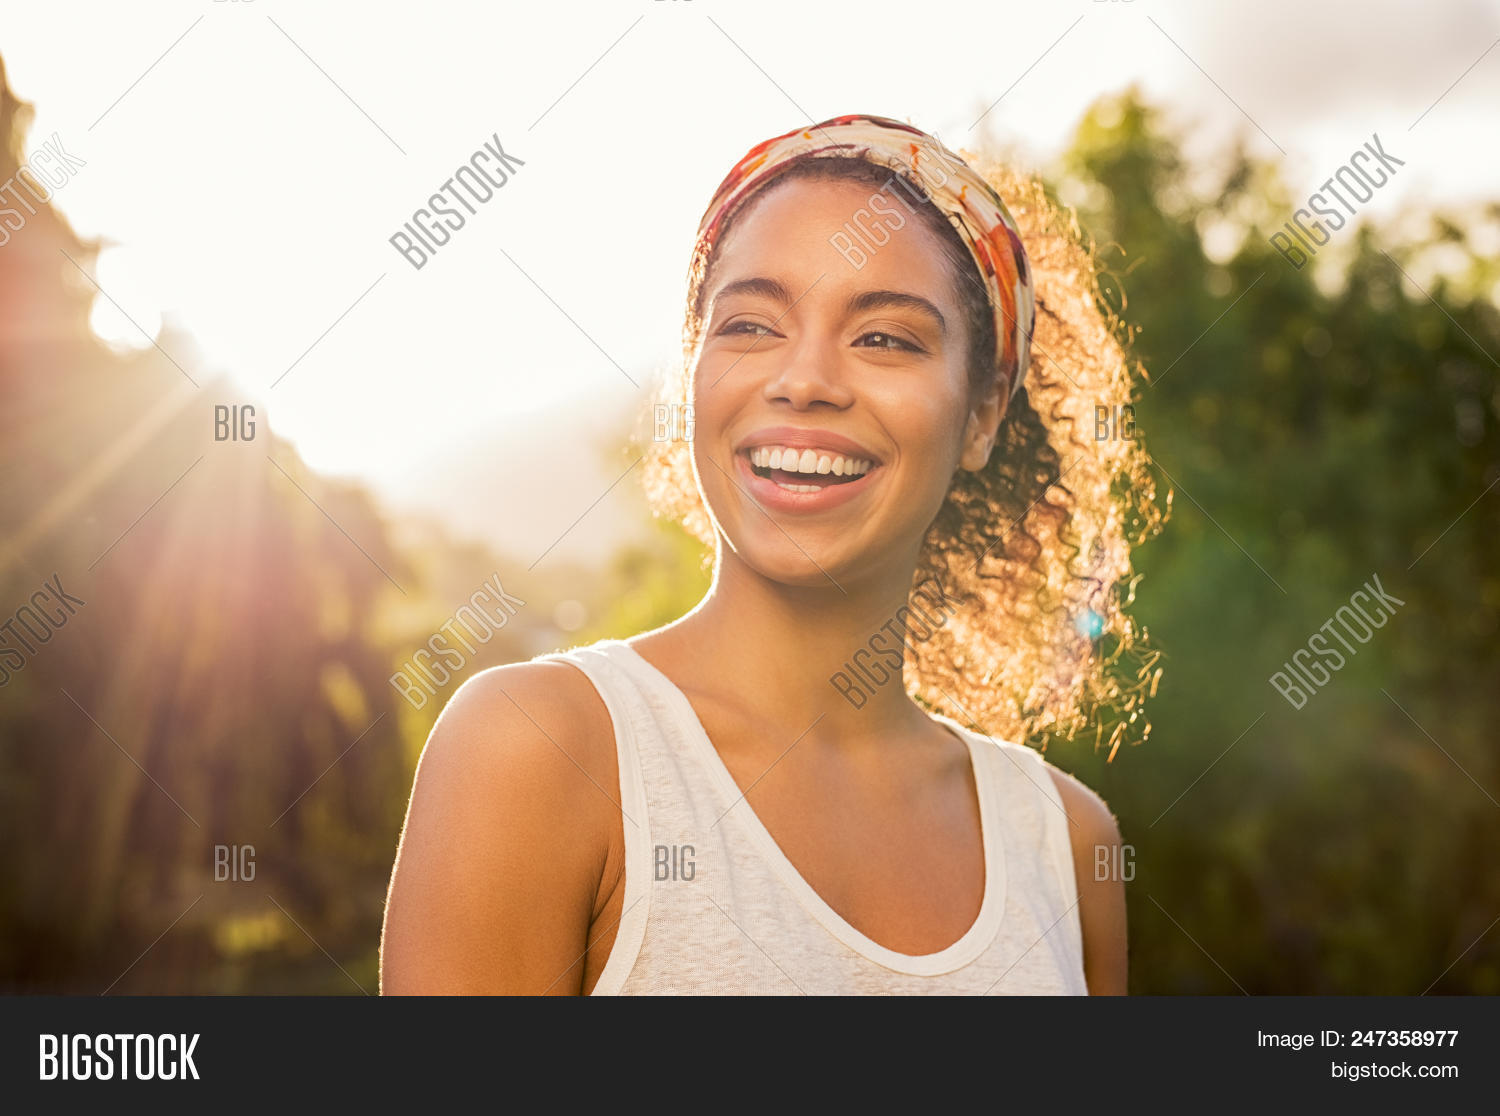 african,african american woman,afro,american,attractive,beautiful,beauty,black,carefree,cheerful,curly,curly hair,enjoy,expression,face,fashion,female,freedom,fun,girl,happy,joy,joyful,laughing,lifestyle,lifestyle people,looking,looking away,natural,nature,one,outdoor,park,people,portrait,pretty,smile,summer,sun,sunray,sunset,woman,young